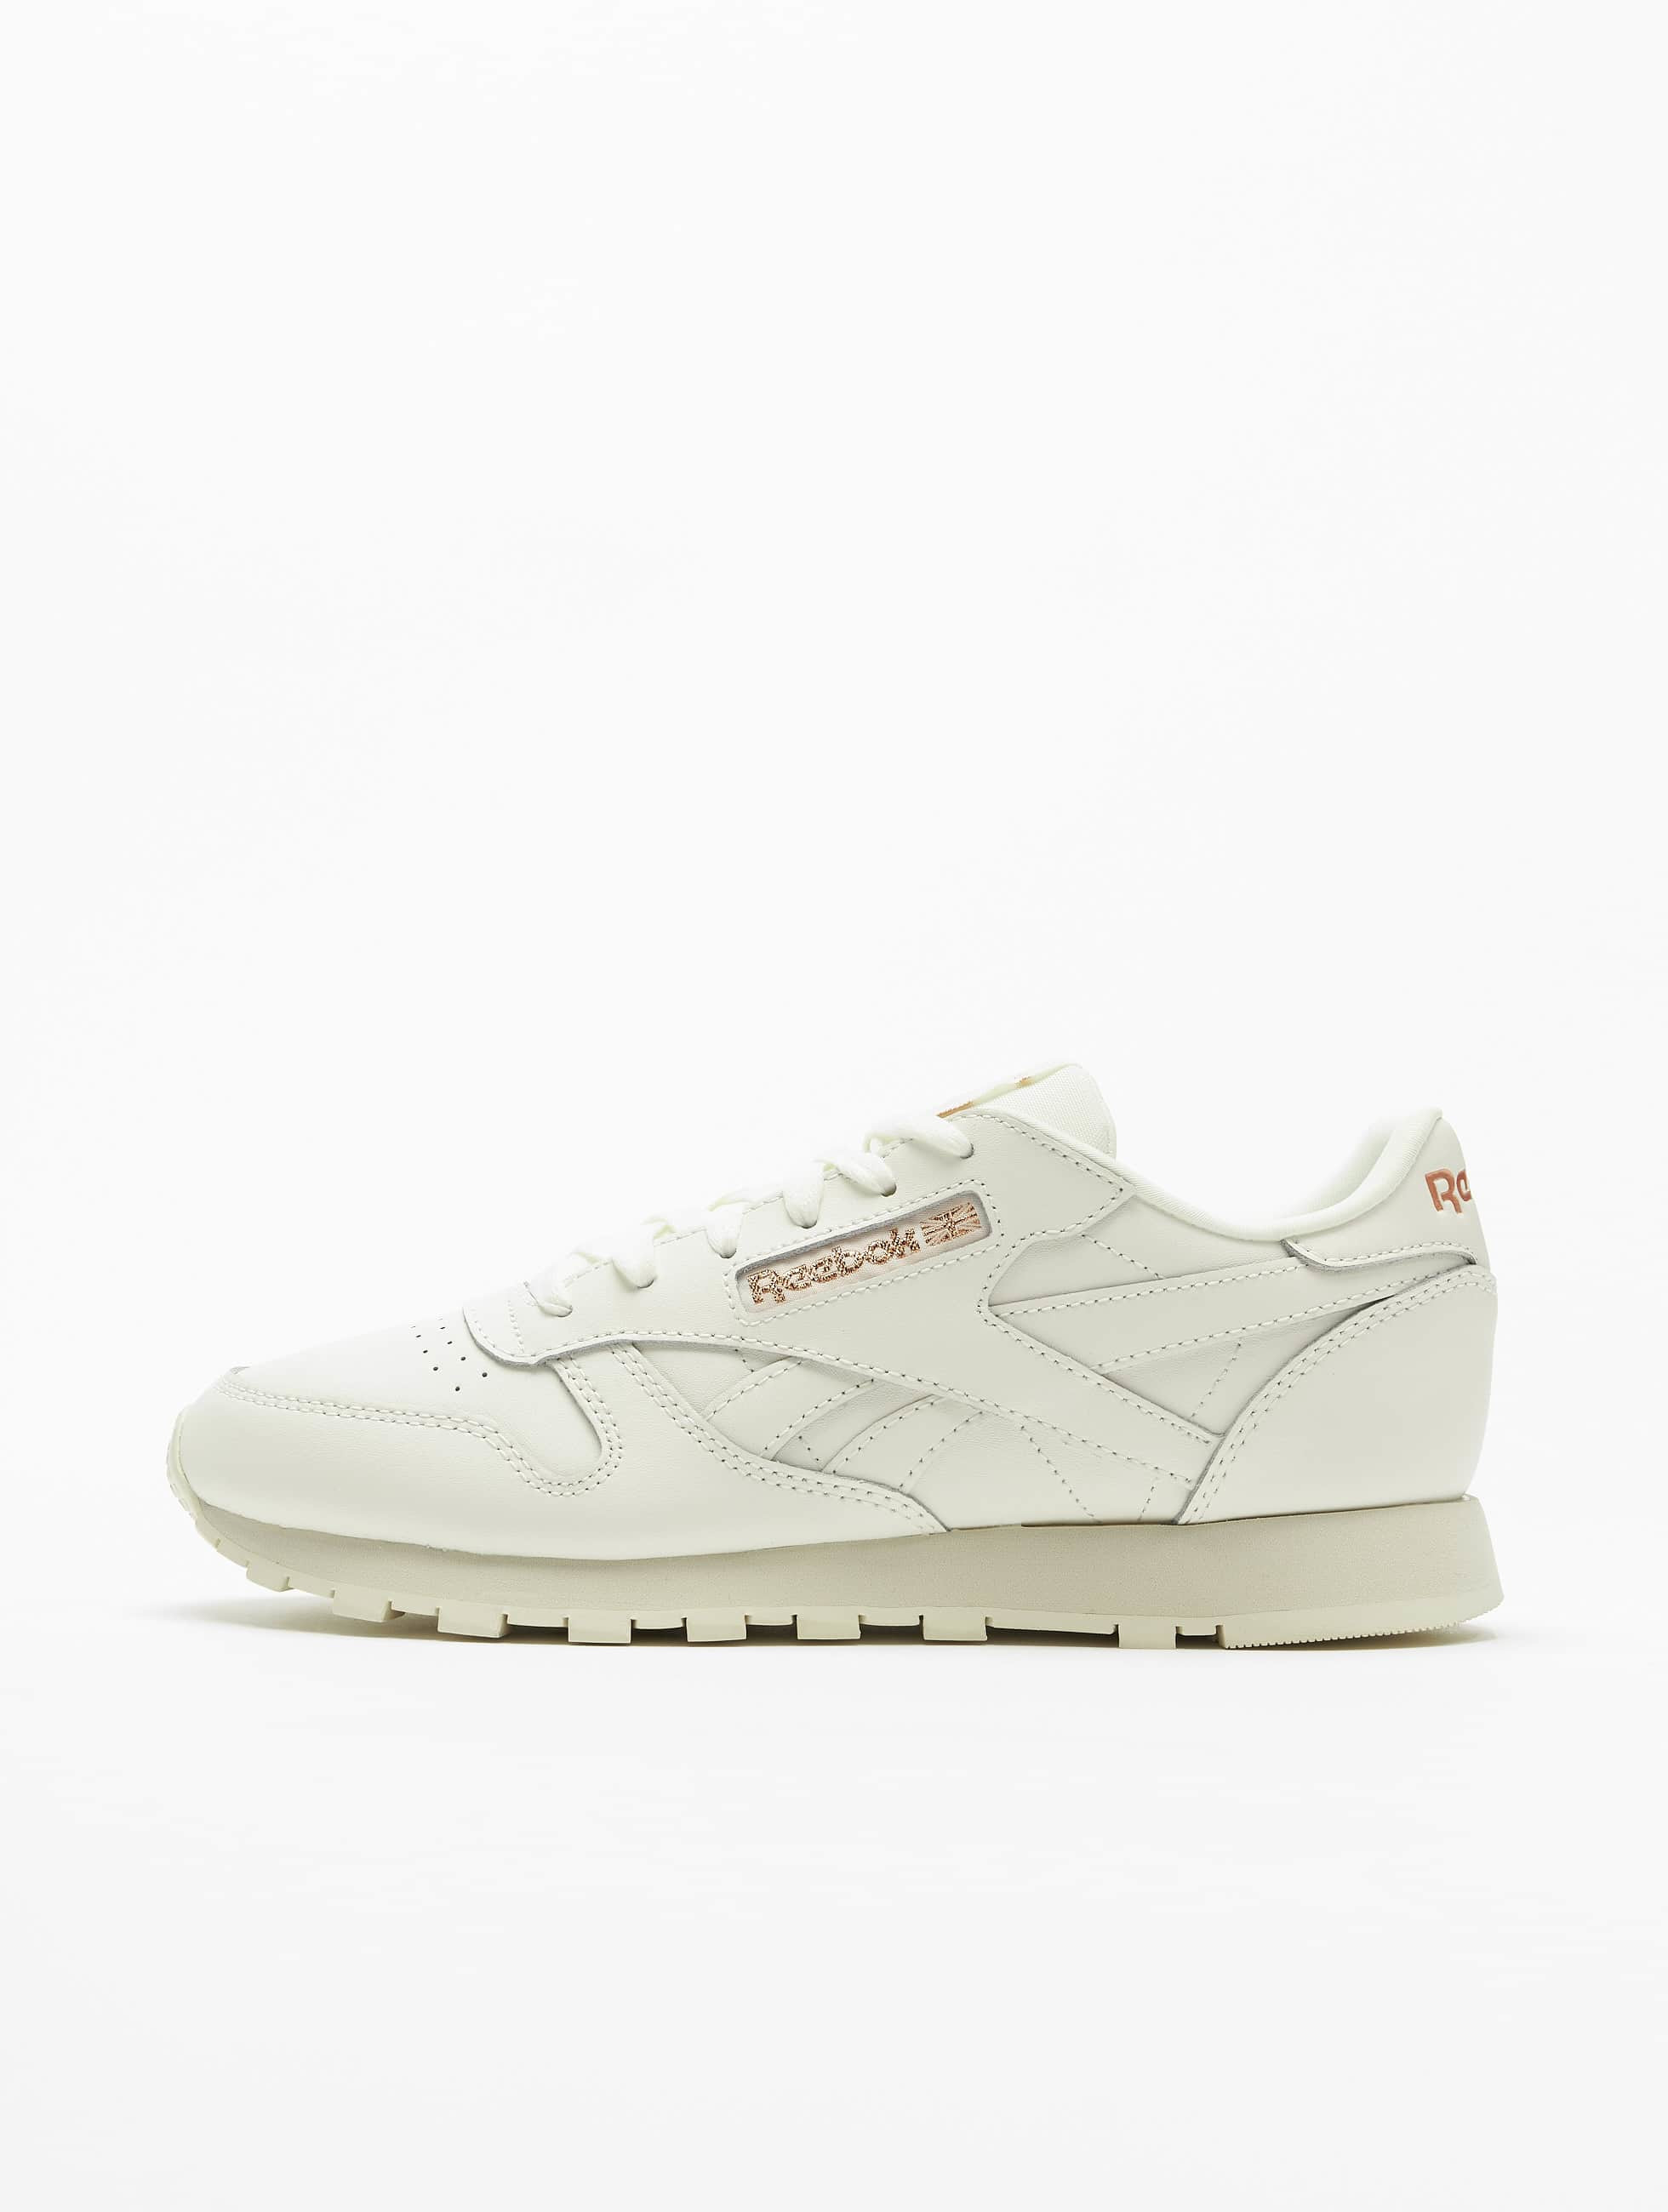 Reebok Classic Leather Sneakers ChalkRose GoldenPape